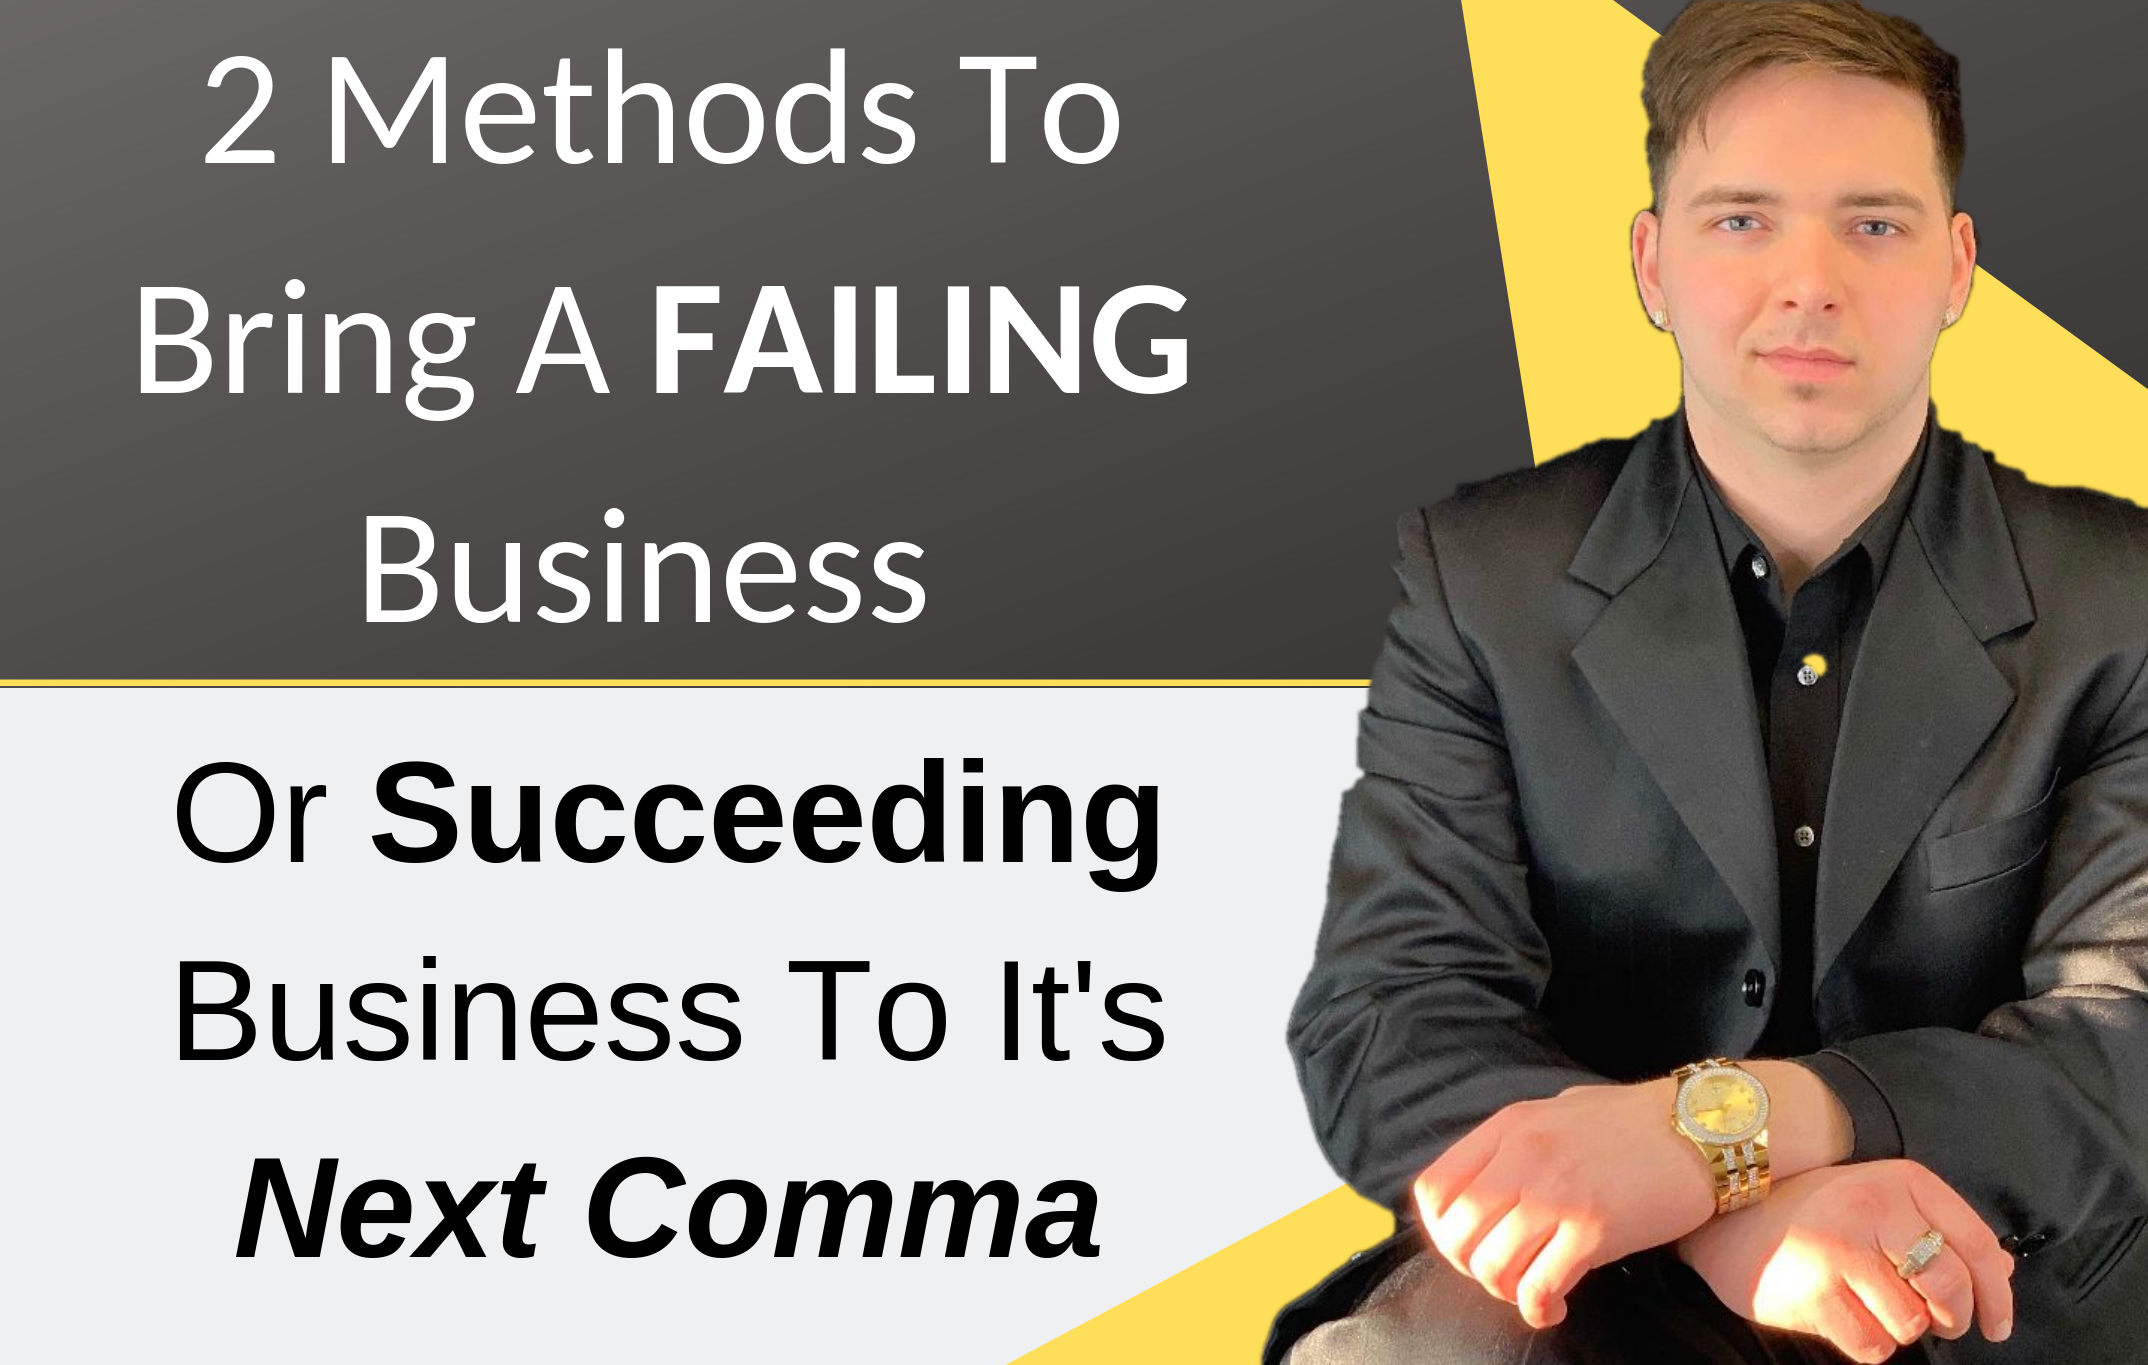 2 Methods To Bring A Failing, Or Succeeding Business, To It's Next Comma